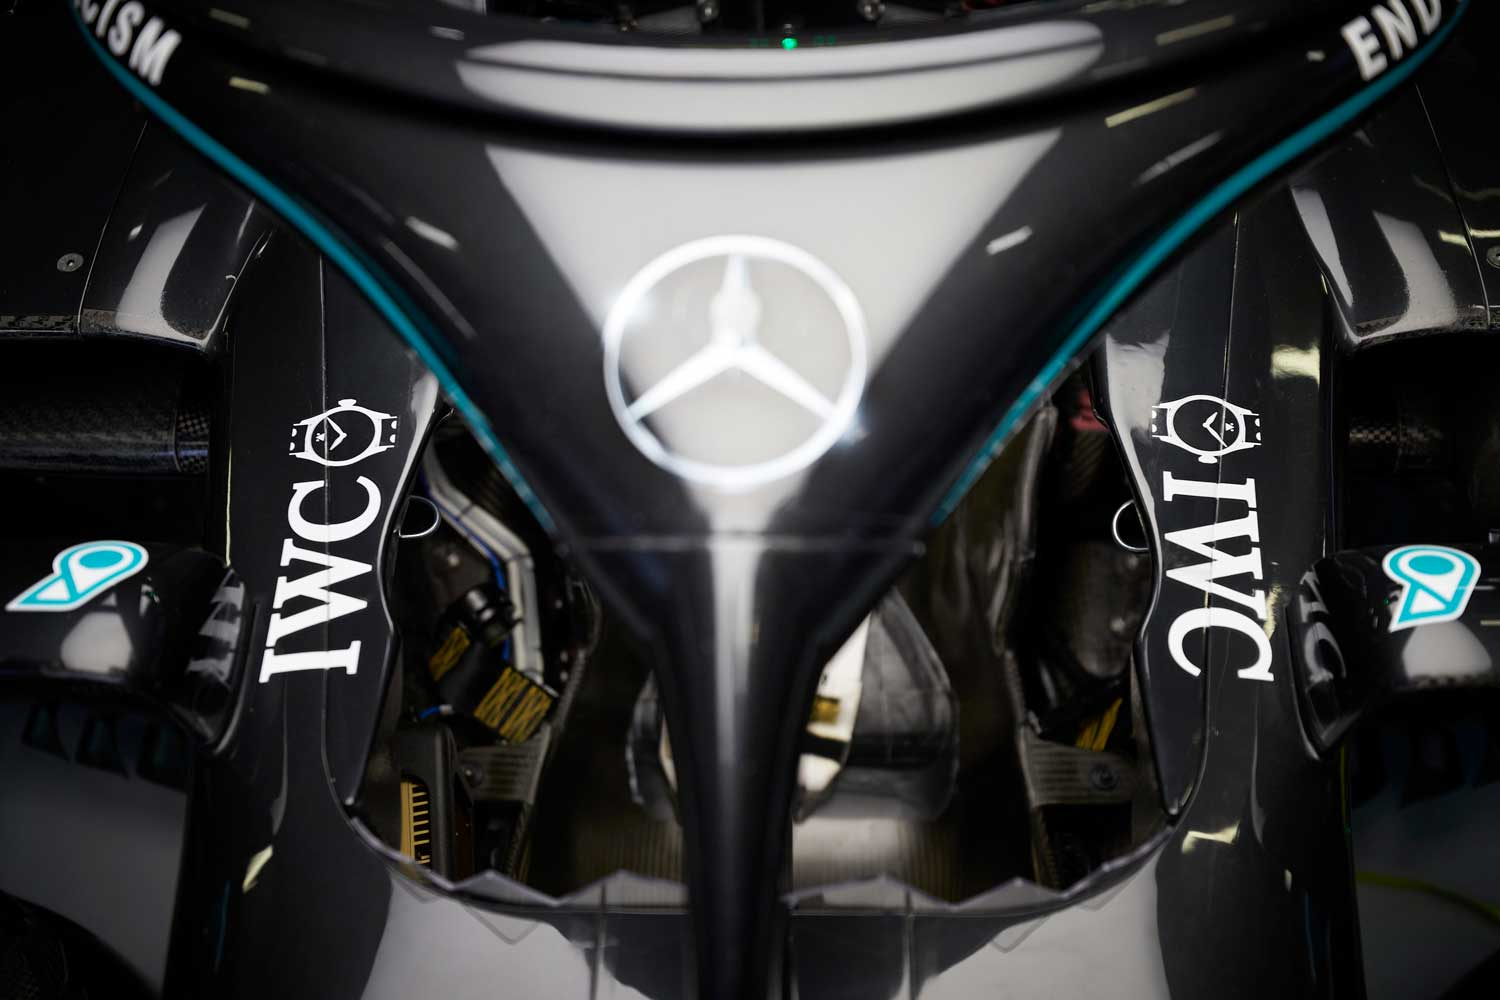 IWC has been a partner of the Mercedes-AMG Petronas Formula One team since 2013